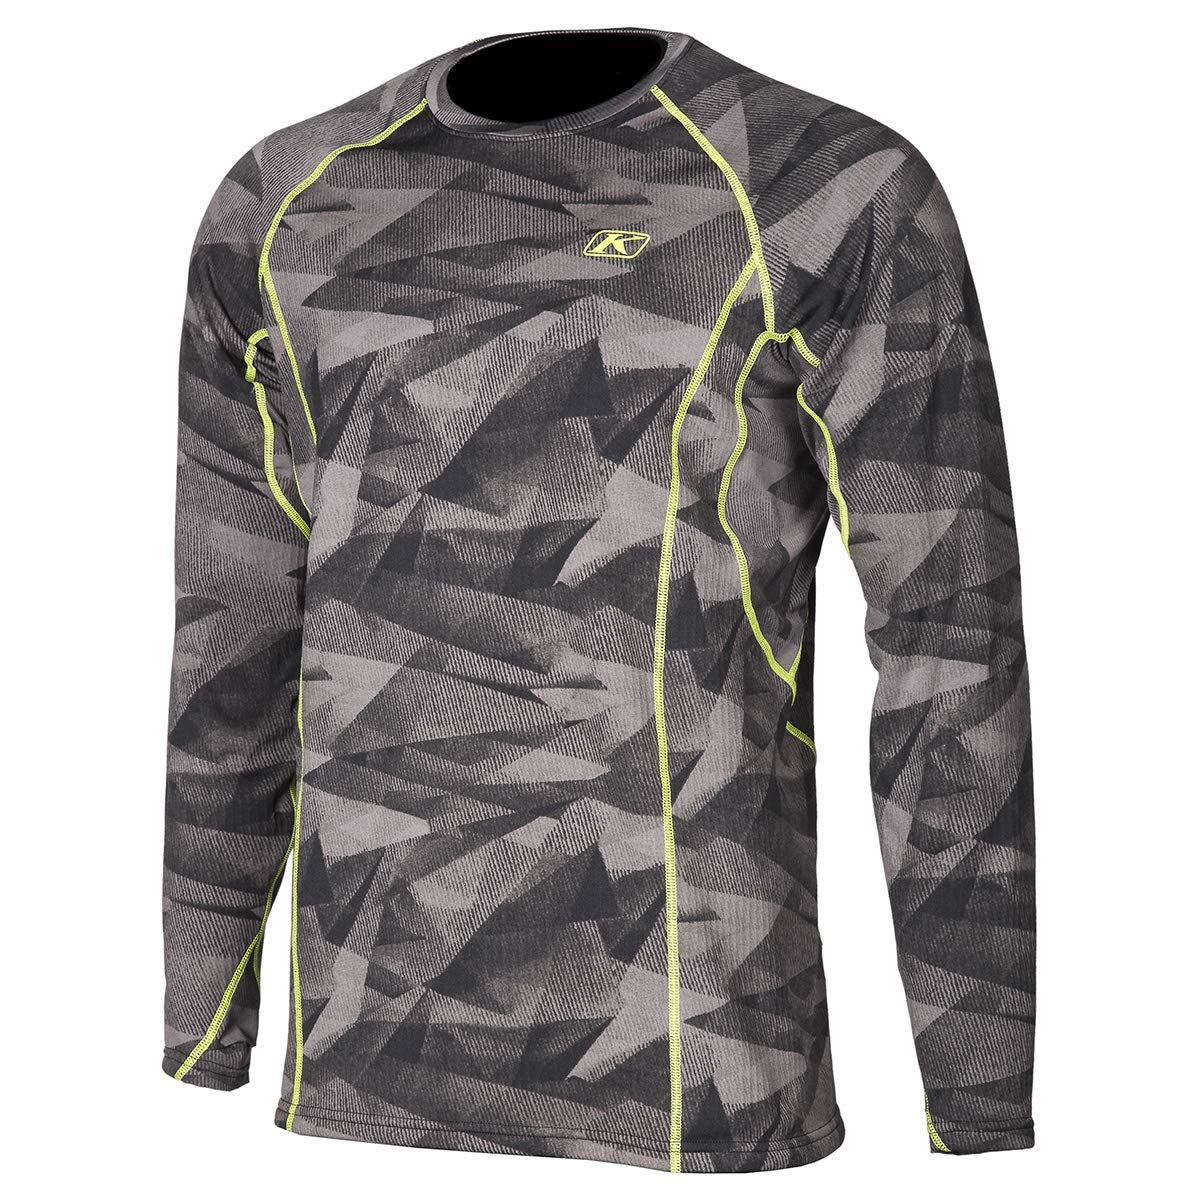 KLIM Aggressor Shirt 3.0 MD Gray 3861-000-130-600